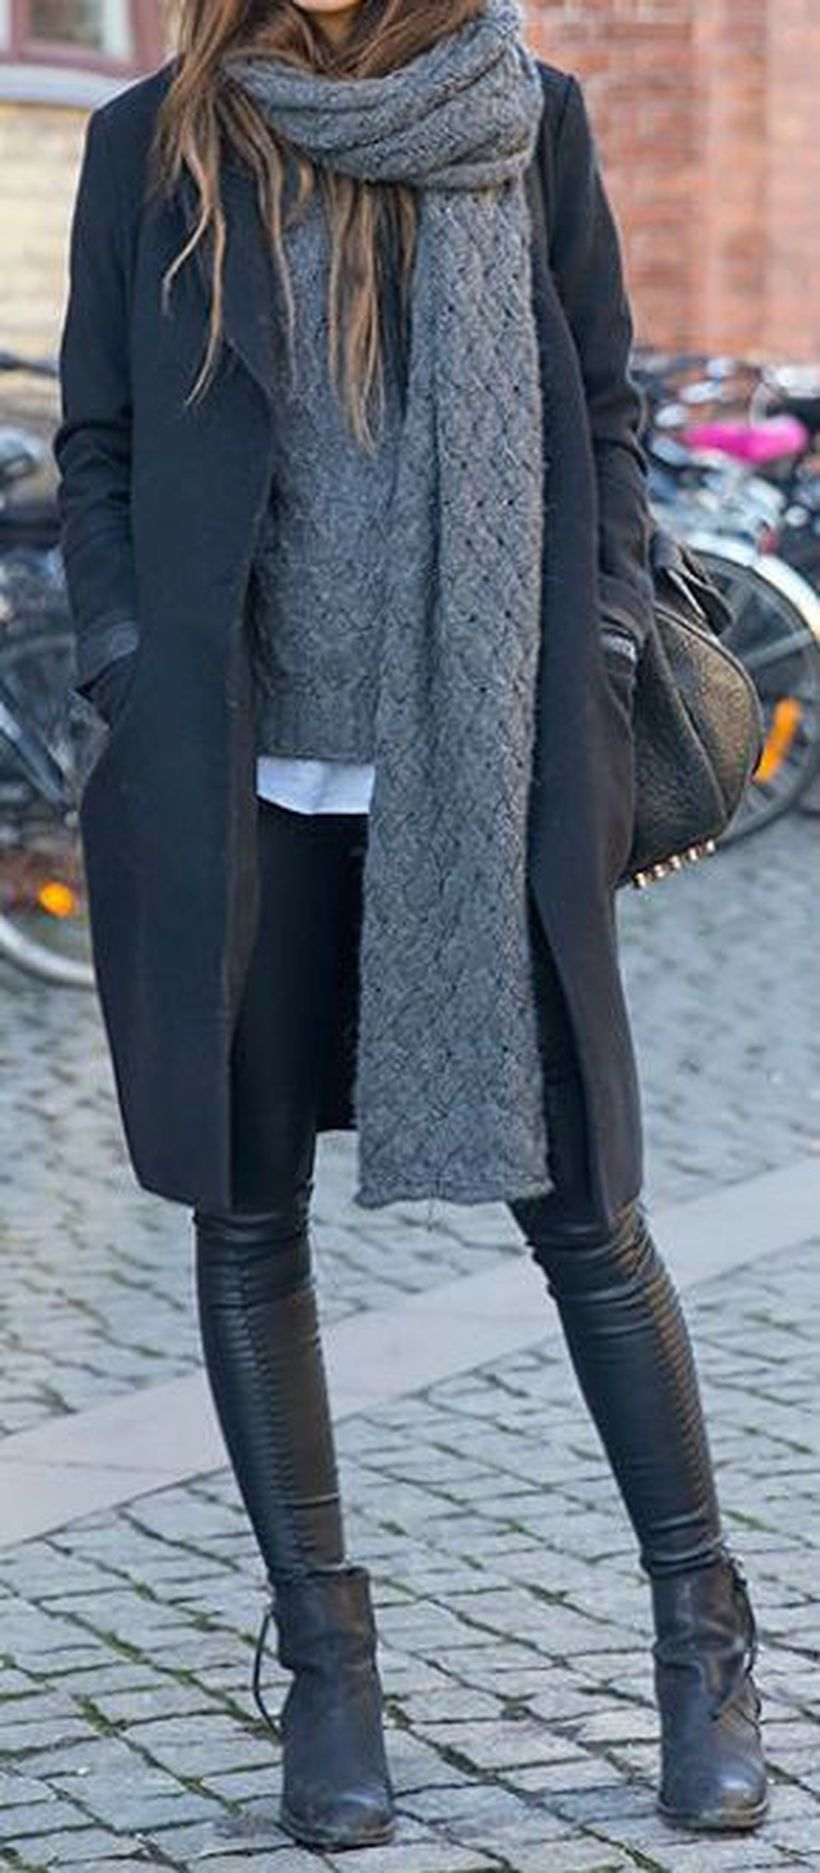 Fashionable outfit style for winter 2017 30